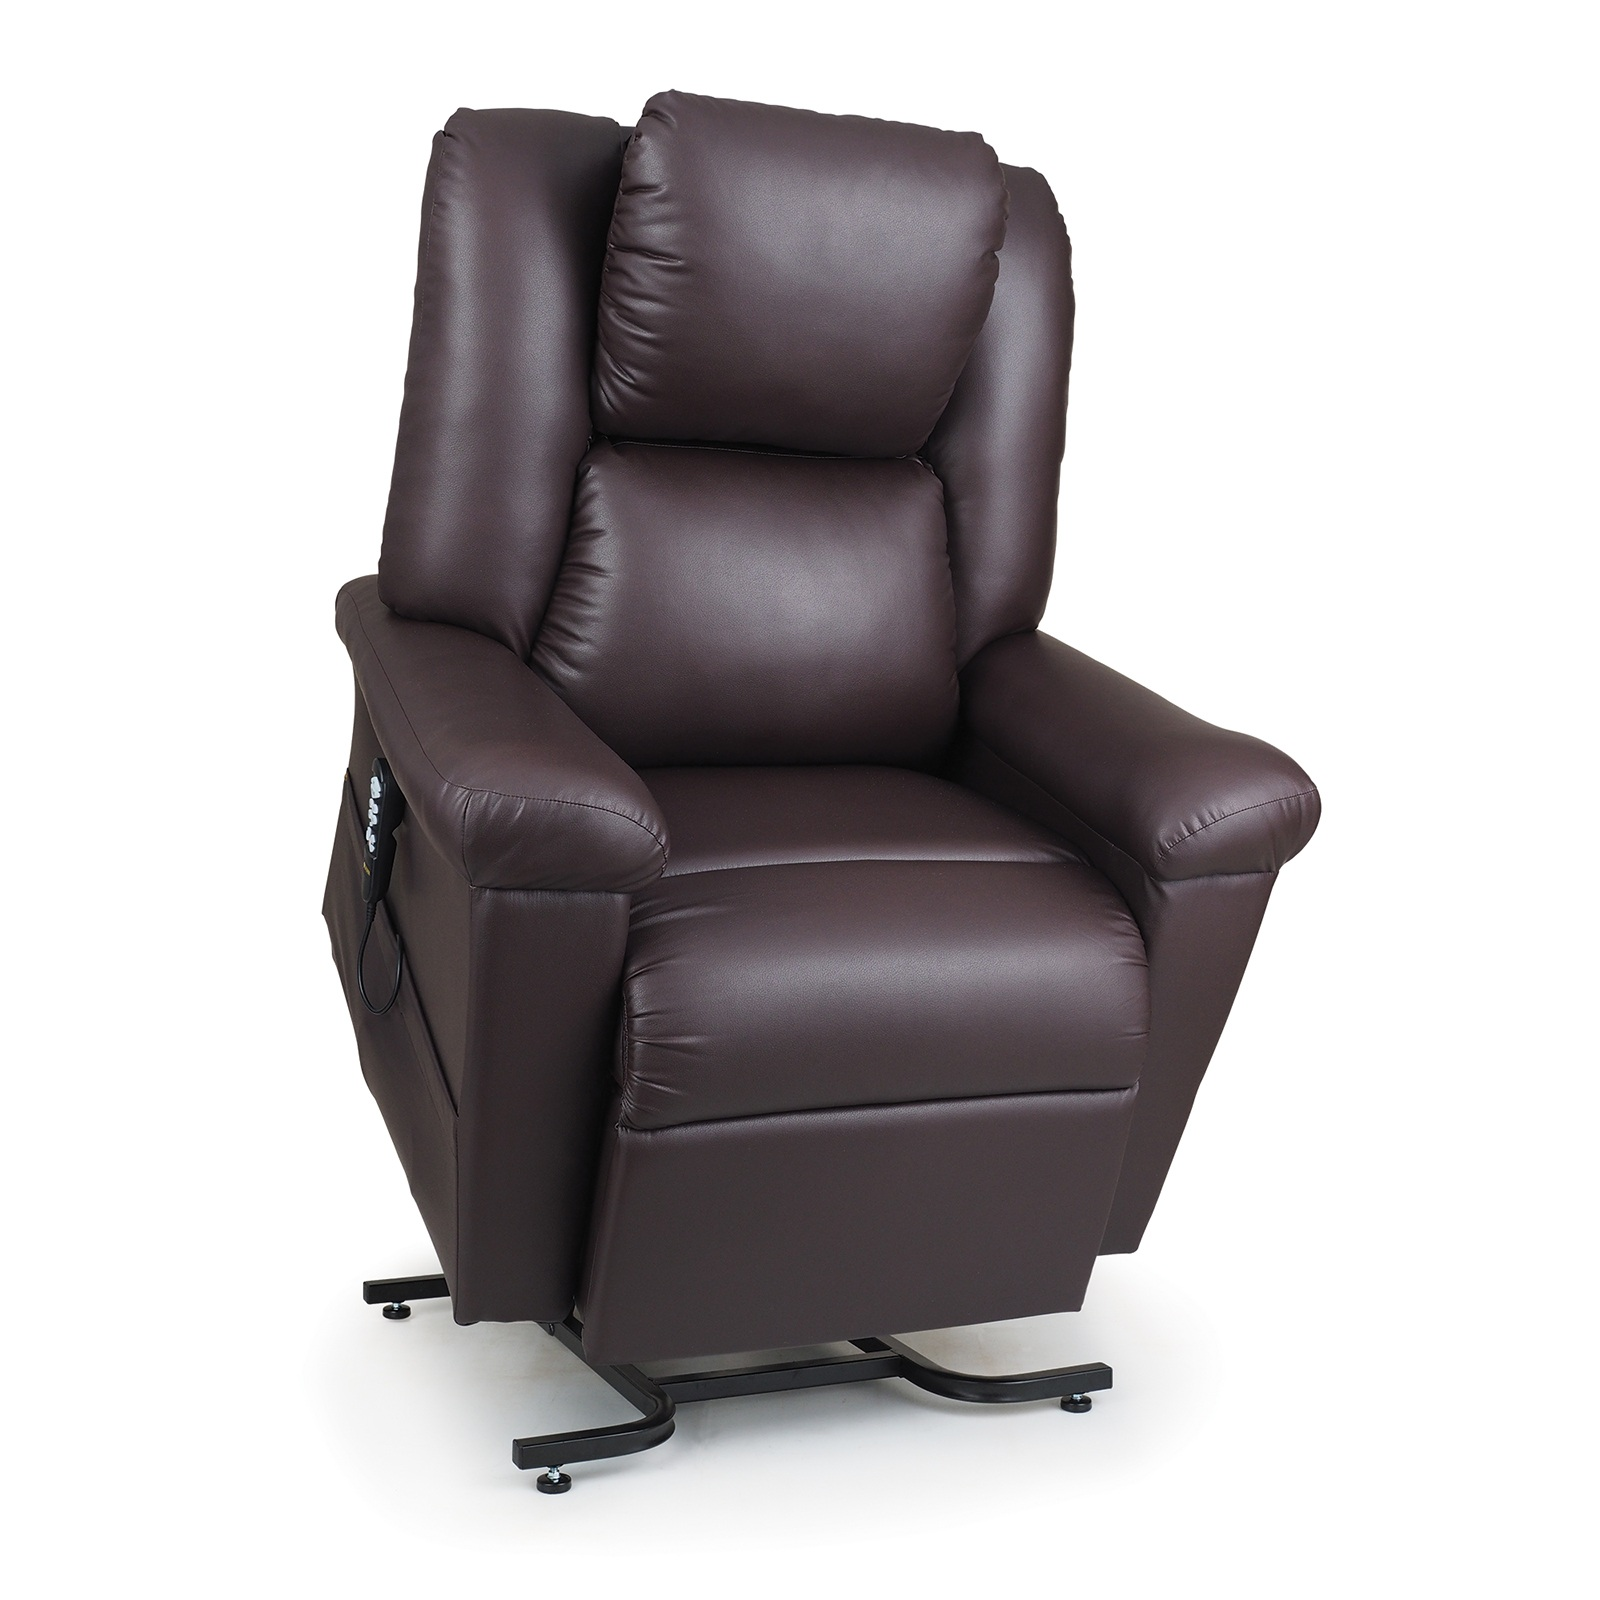 DayDreamer Lift Chair  Northeast Mobility